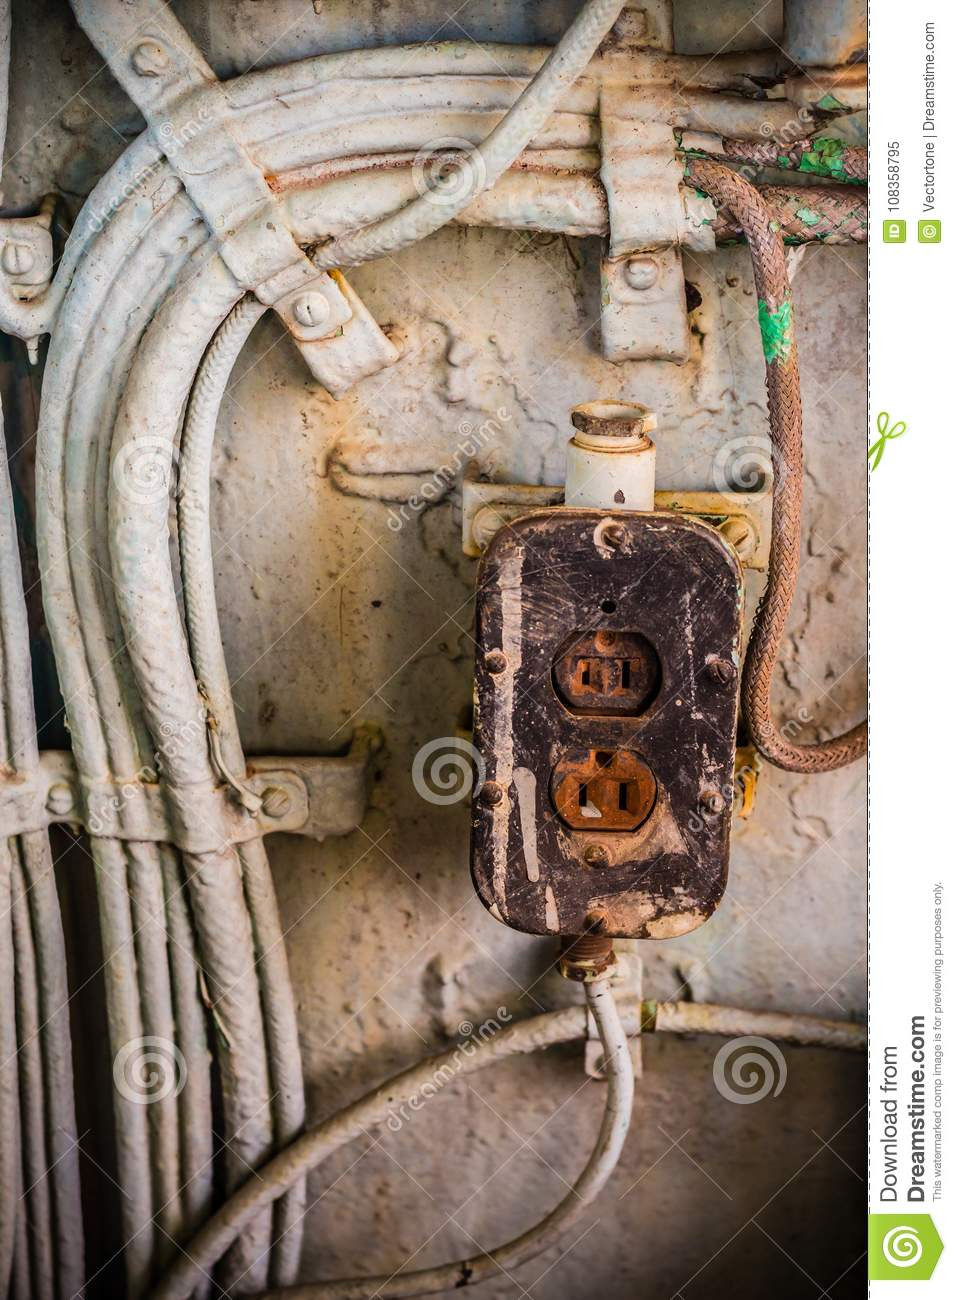 medium resolution of very old power socket with metal tube and electric wire in the abandoned industrial place